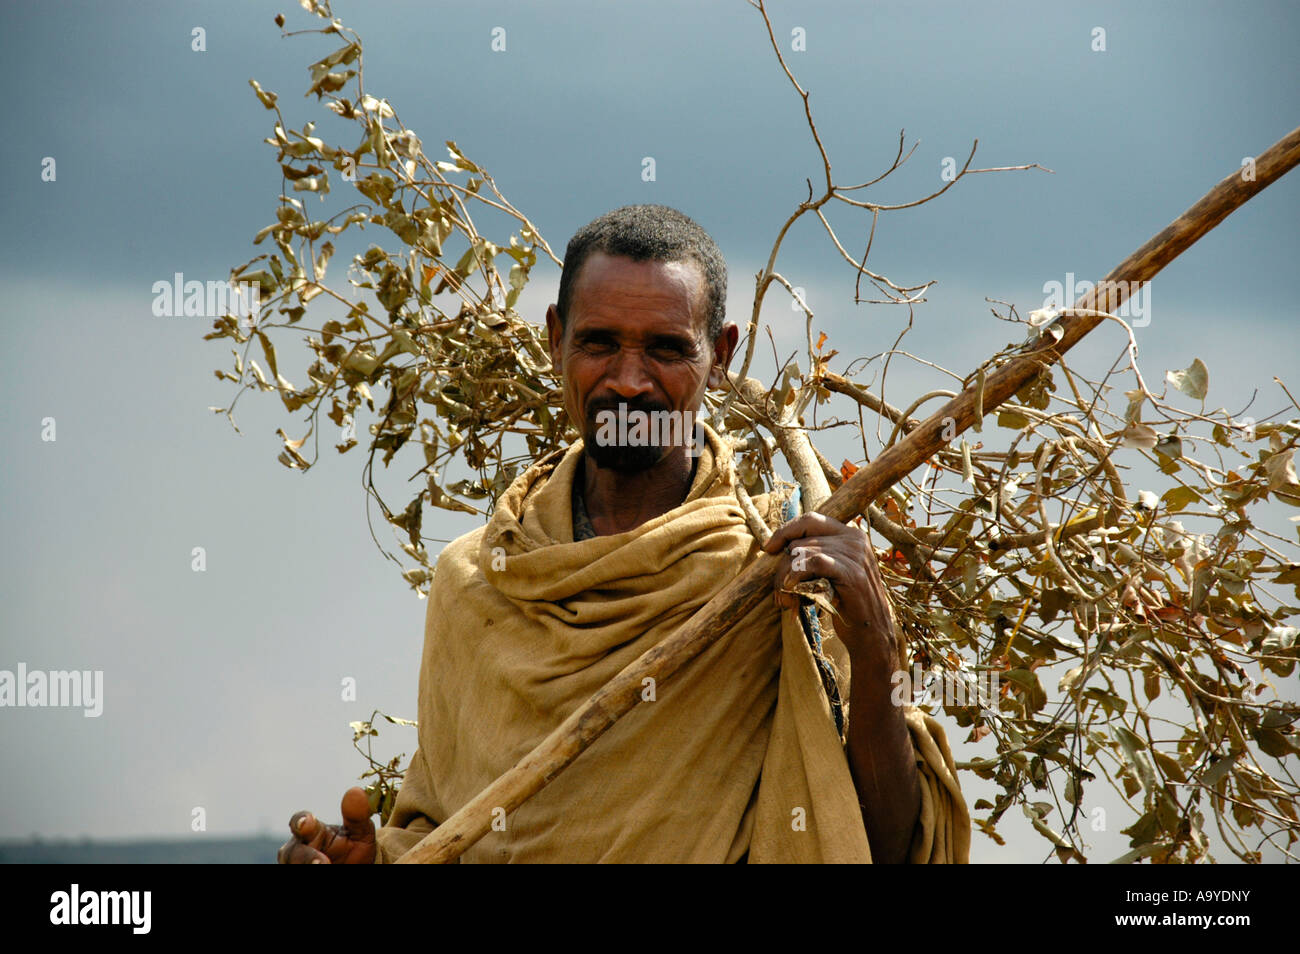 Countryman wearing a cape and a stick carries firewood Ethiopia Stock Photo